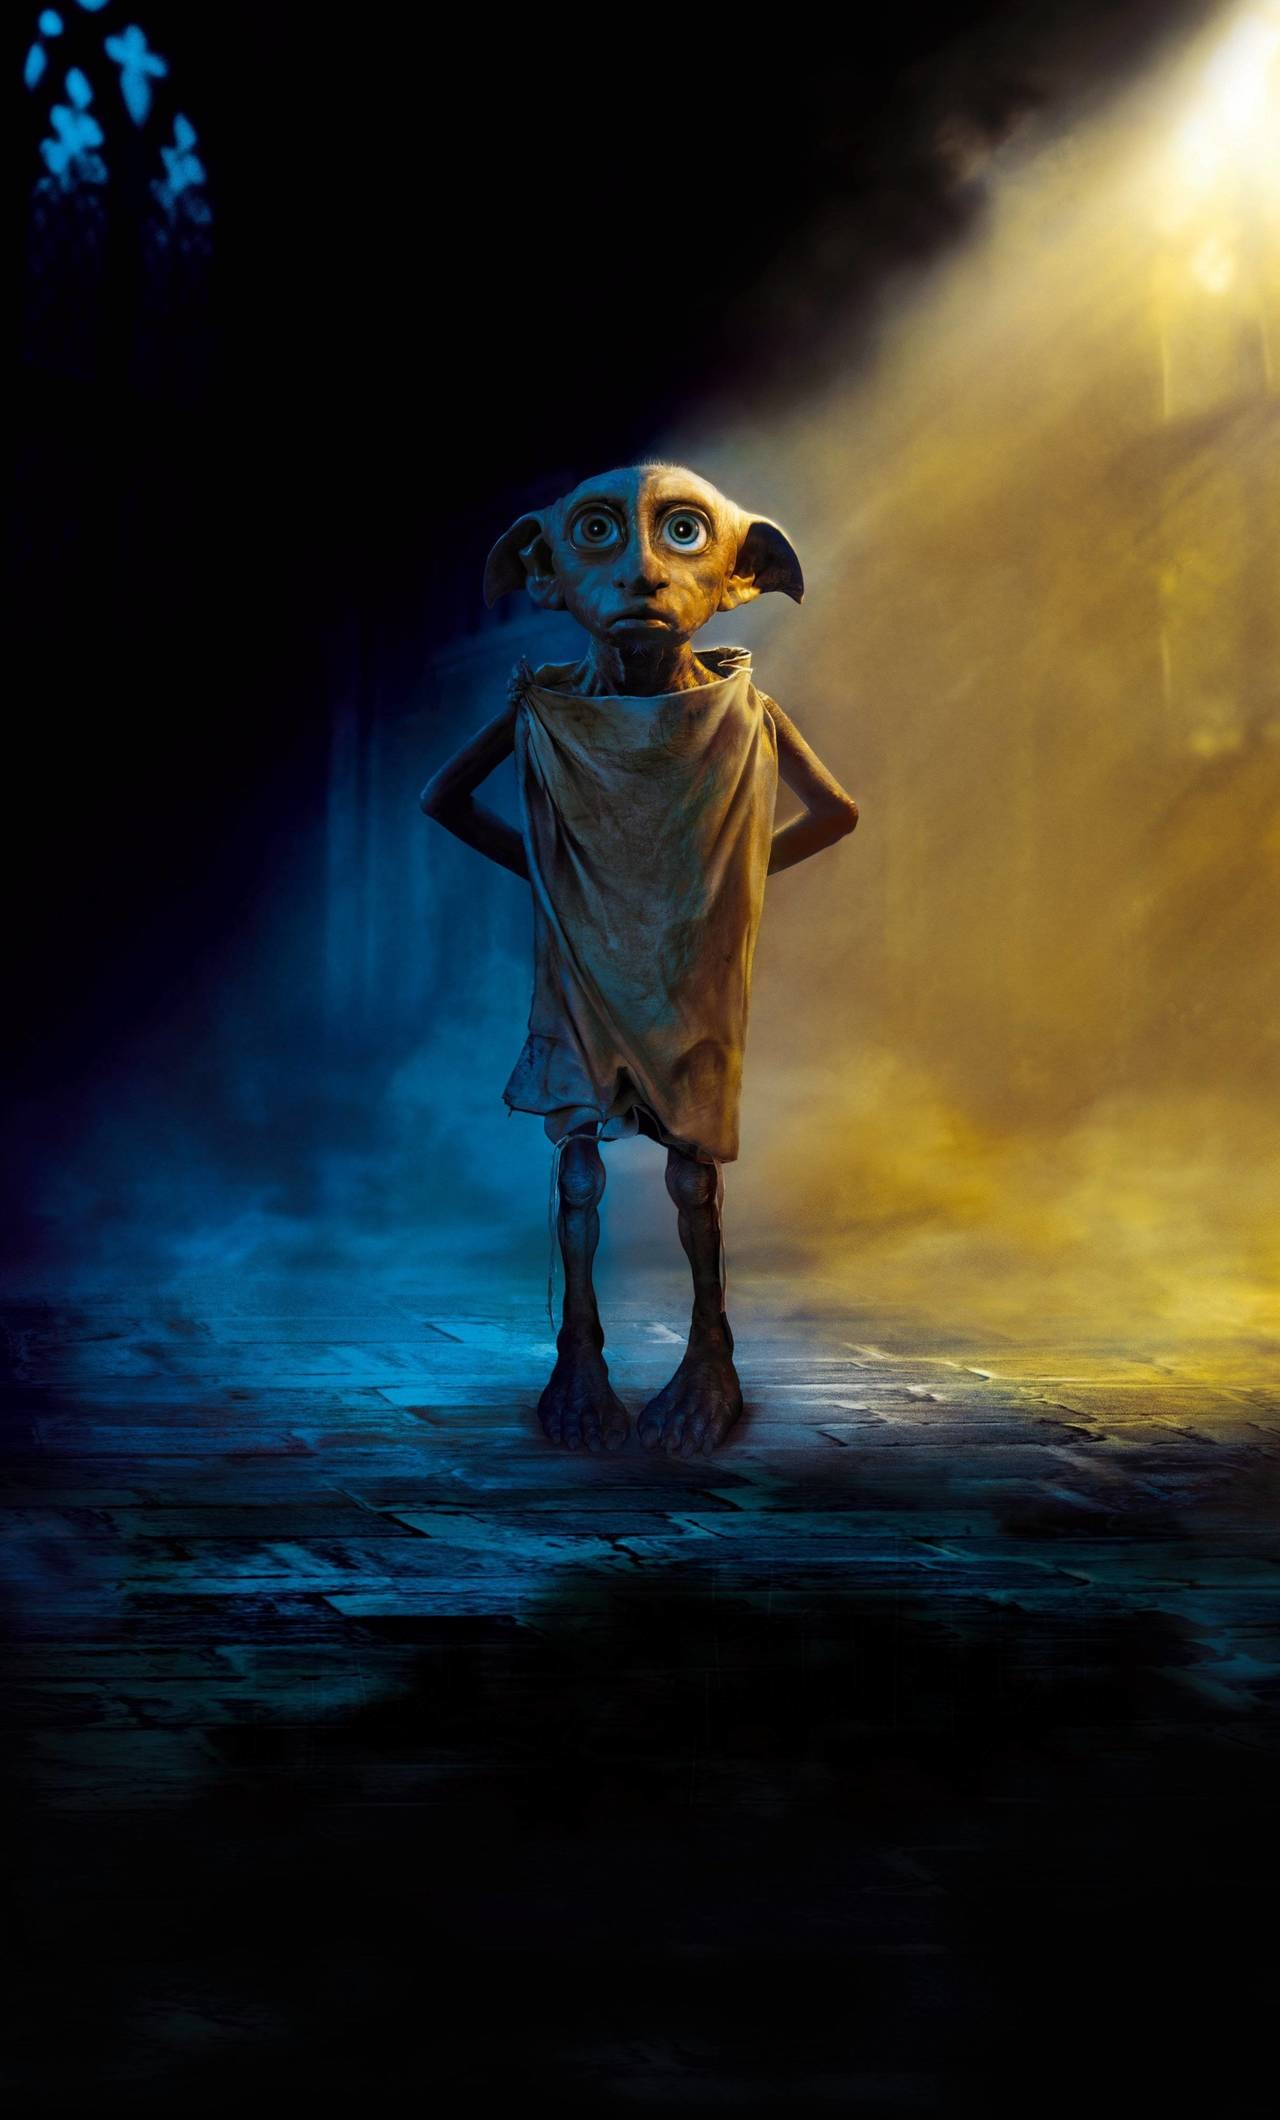 Harry Potter And The Deathly Hallows Wallpaper Hd Dobby Wallpaper 183 ①